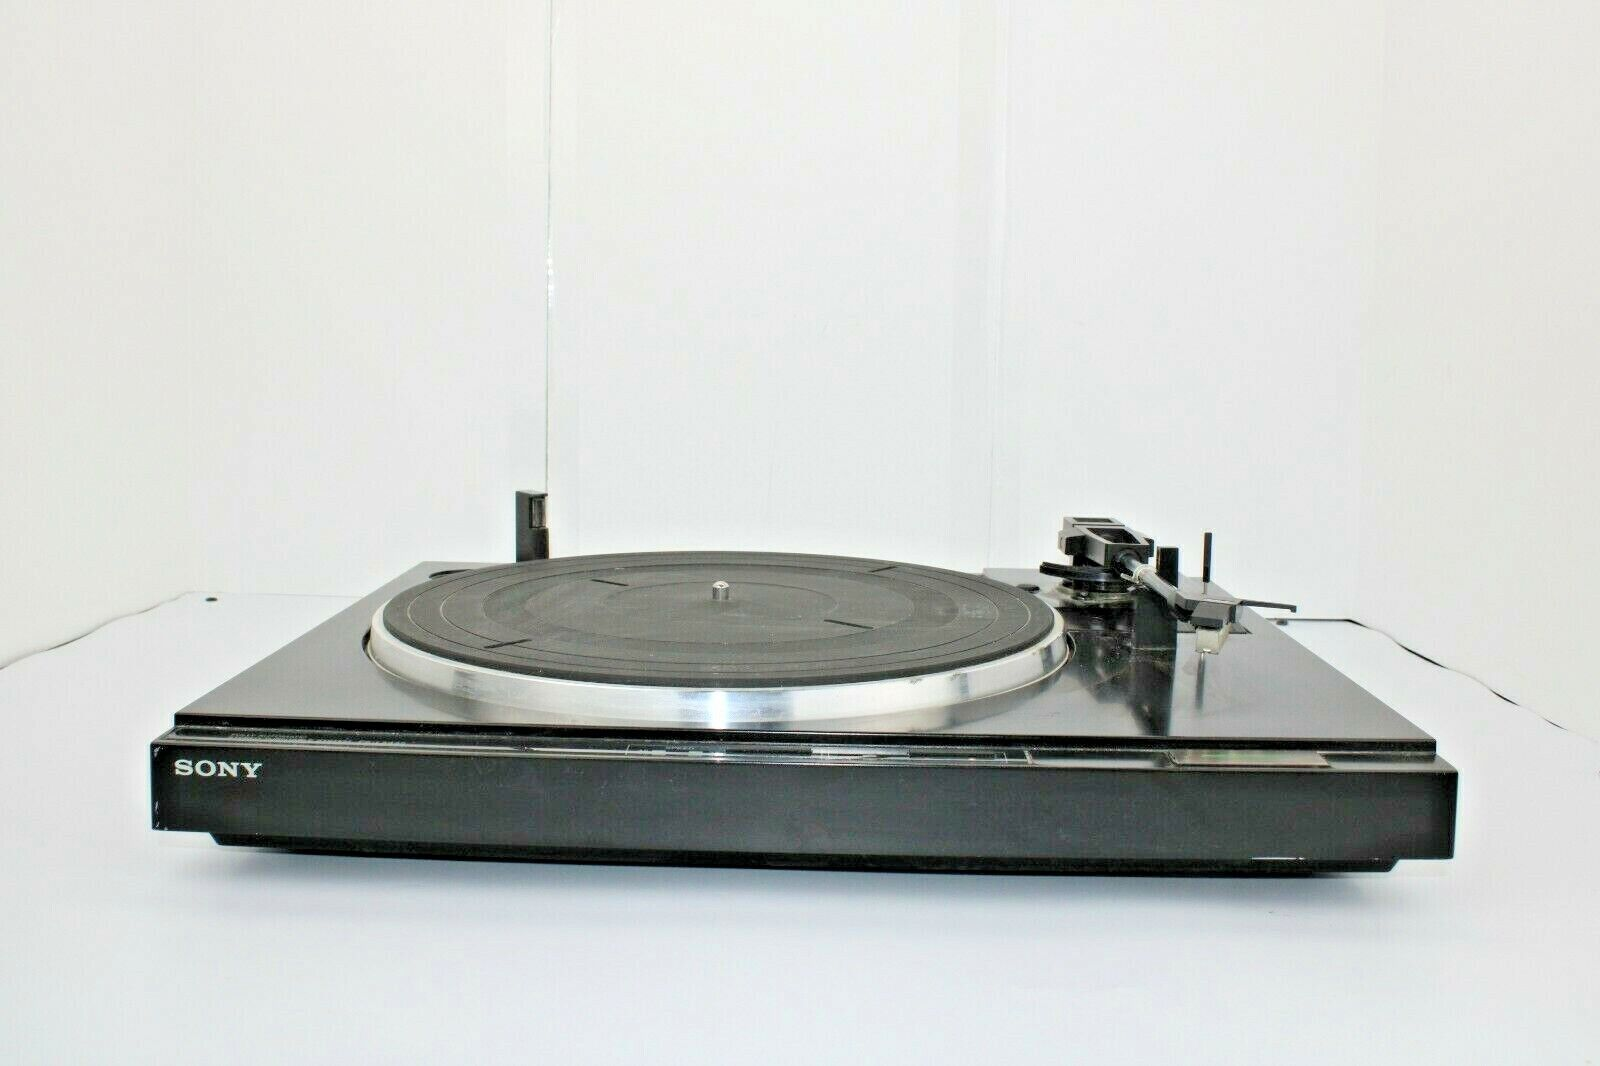 SONY PS-LX435 AUTOMATIC STEREO TURNTABLE SYSTEM RECORD PLAYER FOR PARTS